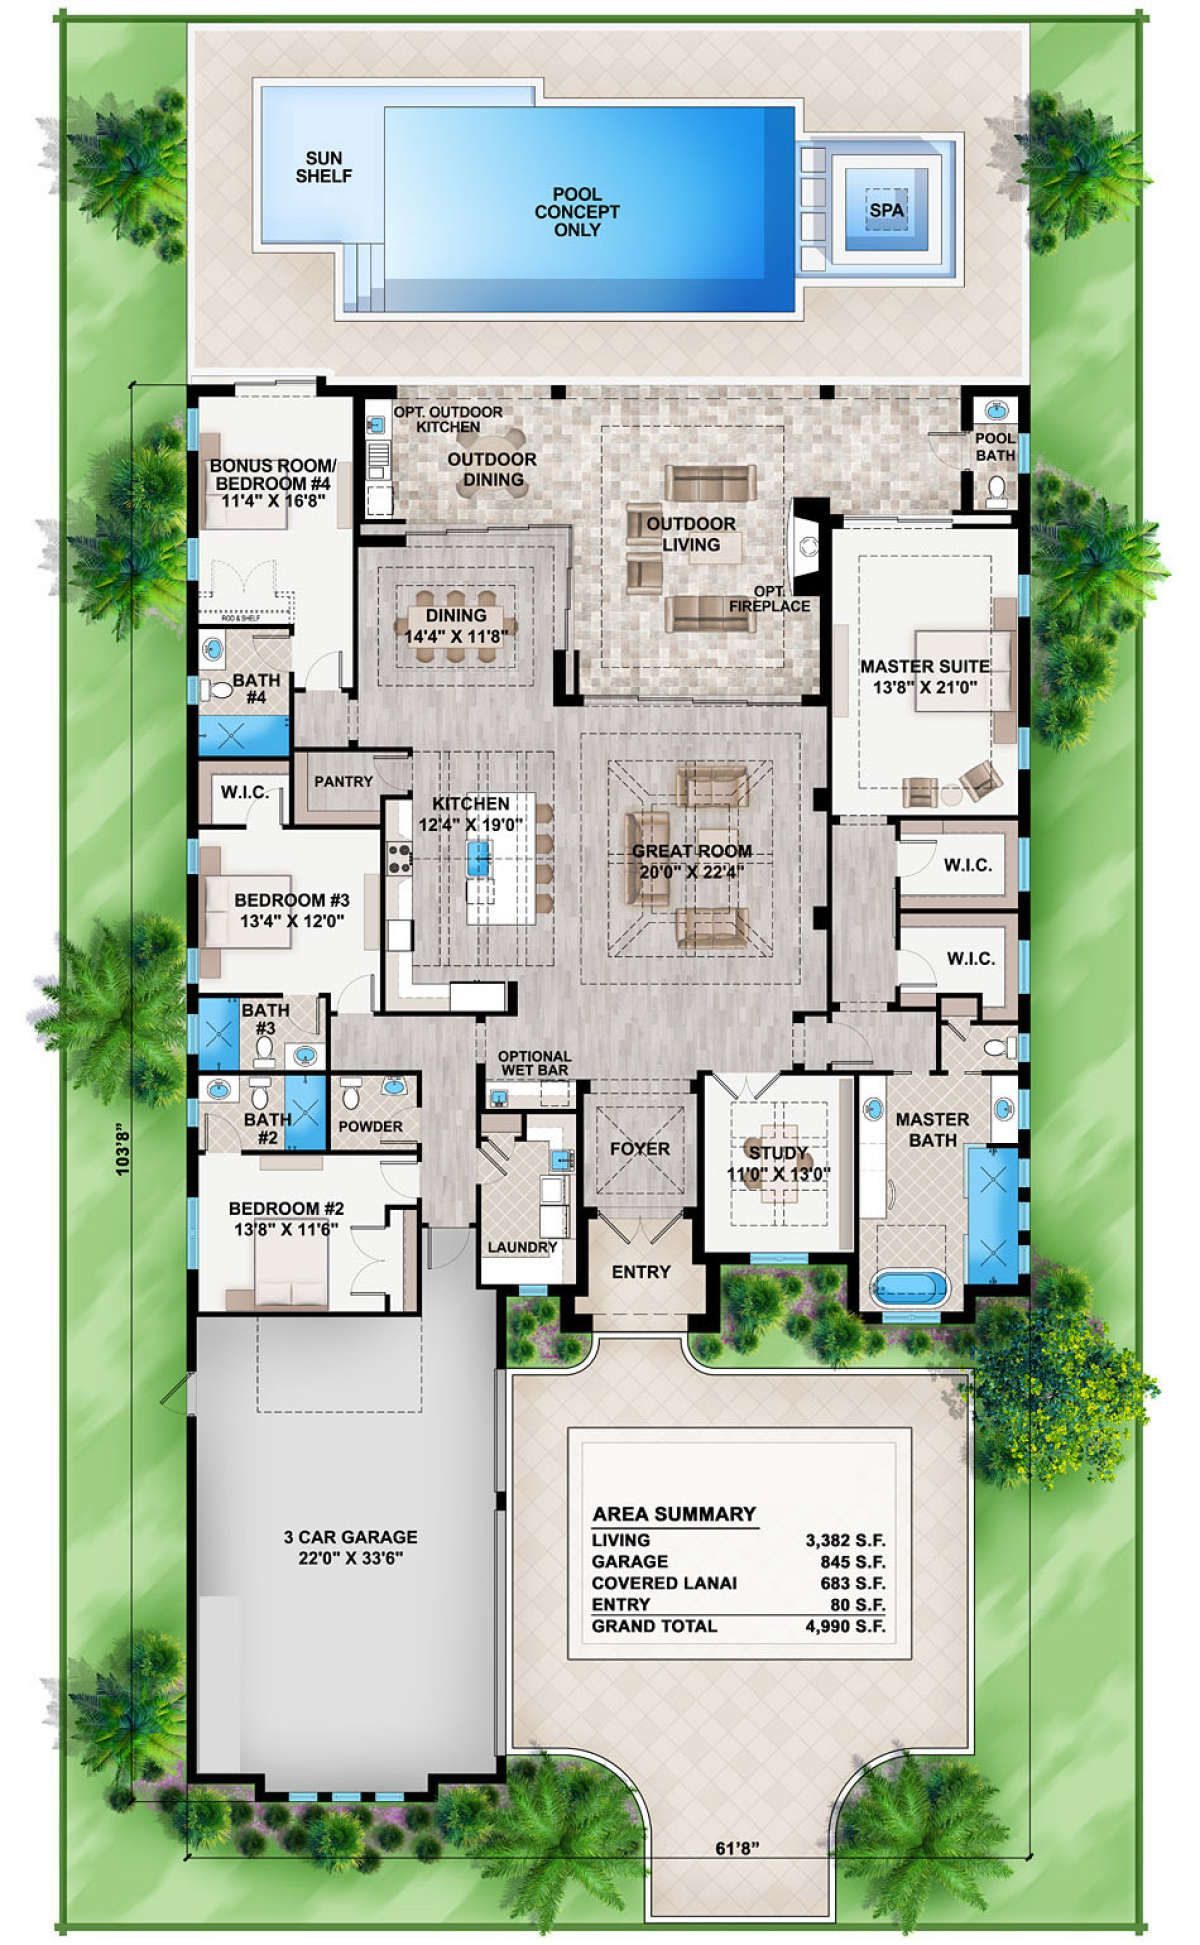 House Plan 207 00052 Florida Plan 3 382 Square Feet 4 Bedrooms 5 Bathrooms Florida House Plans Contemporary House Plans House Plans